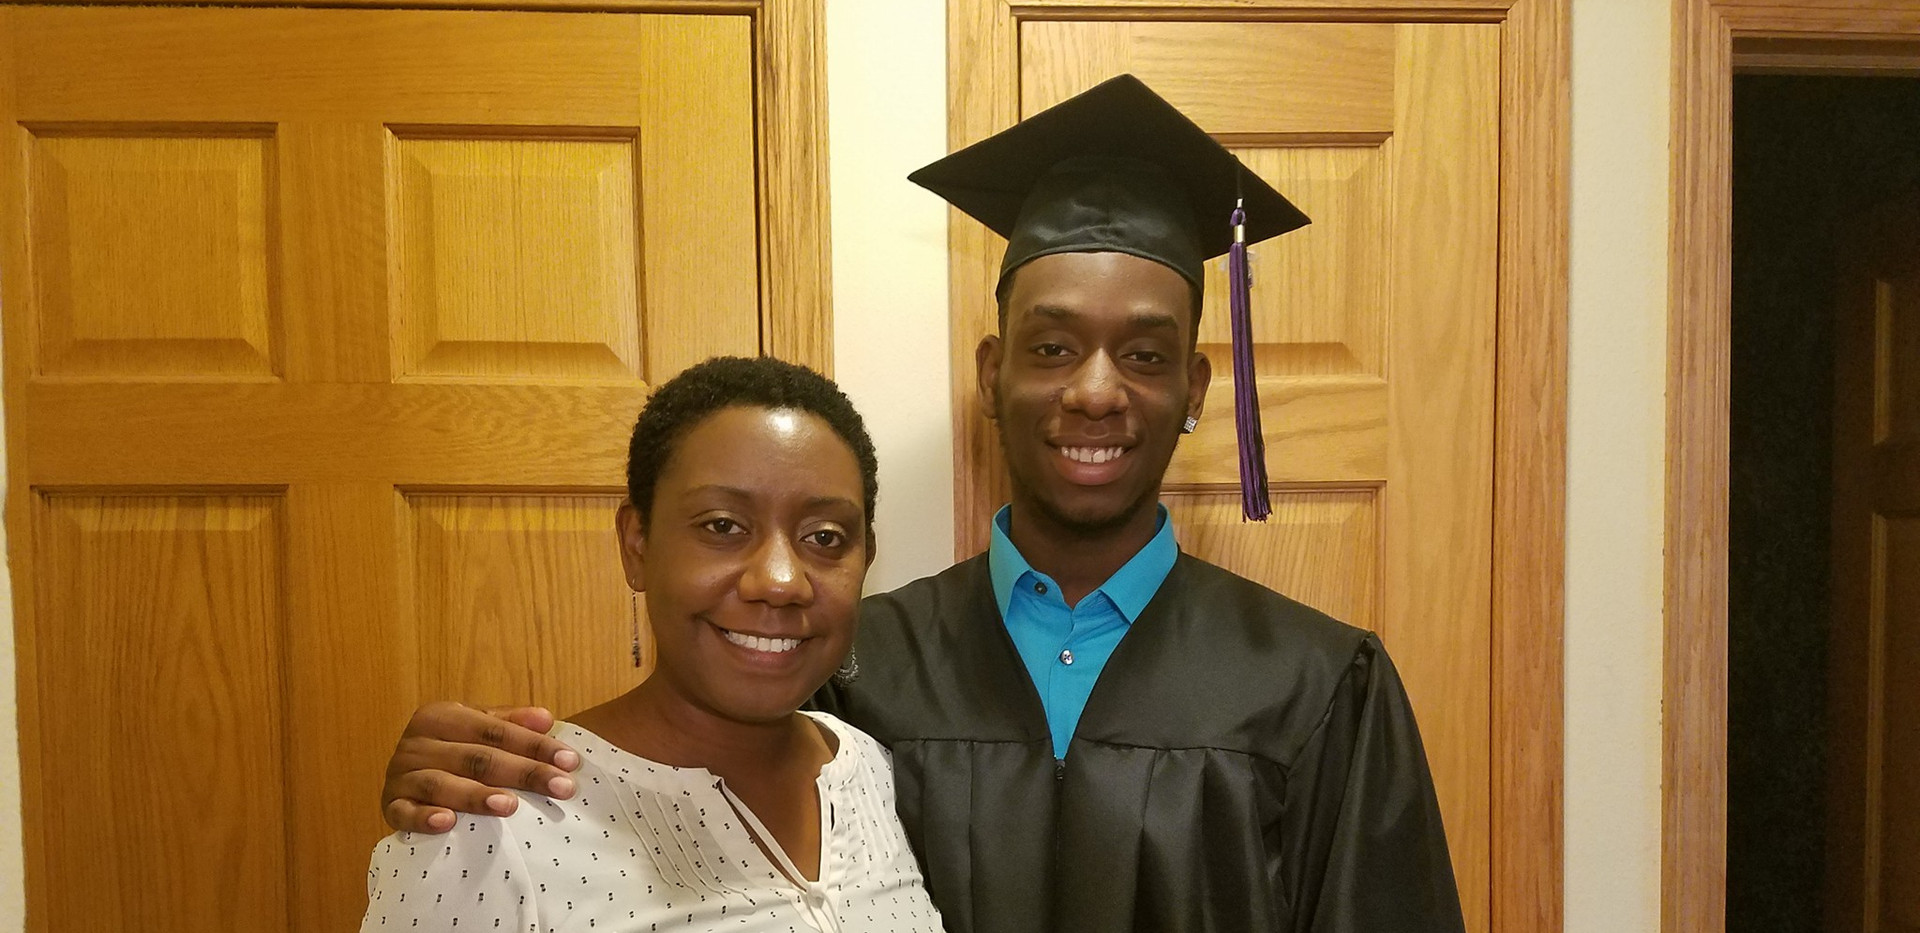 Angela and her son for his high school graduation